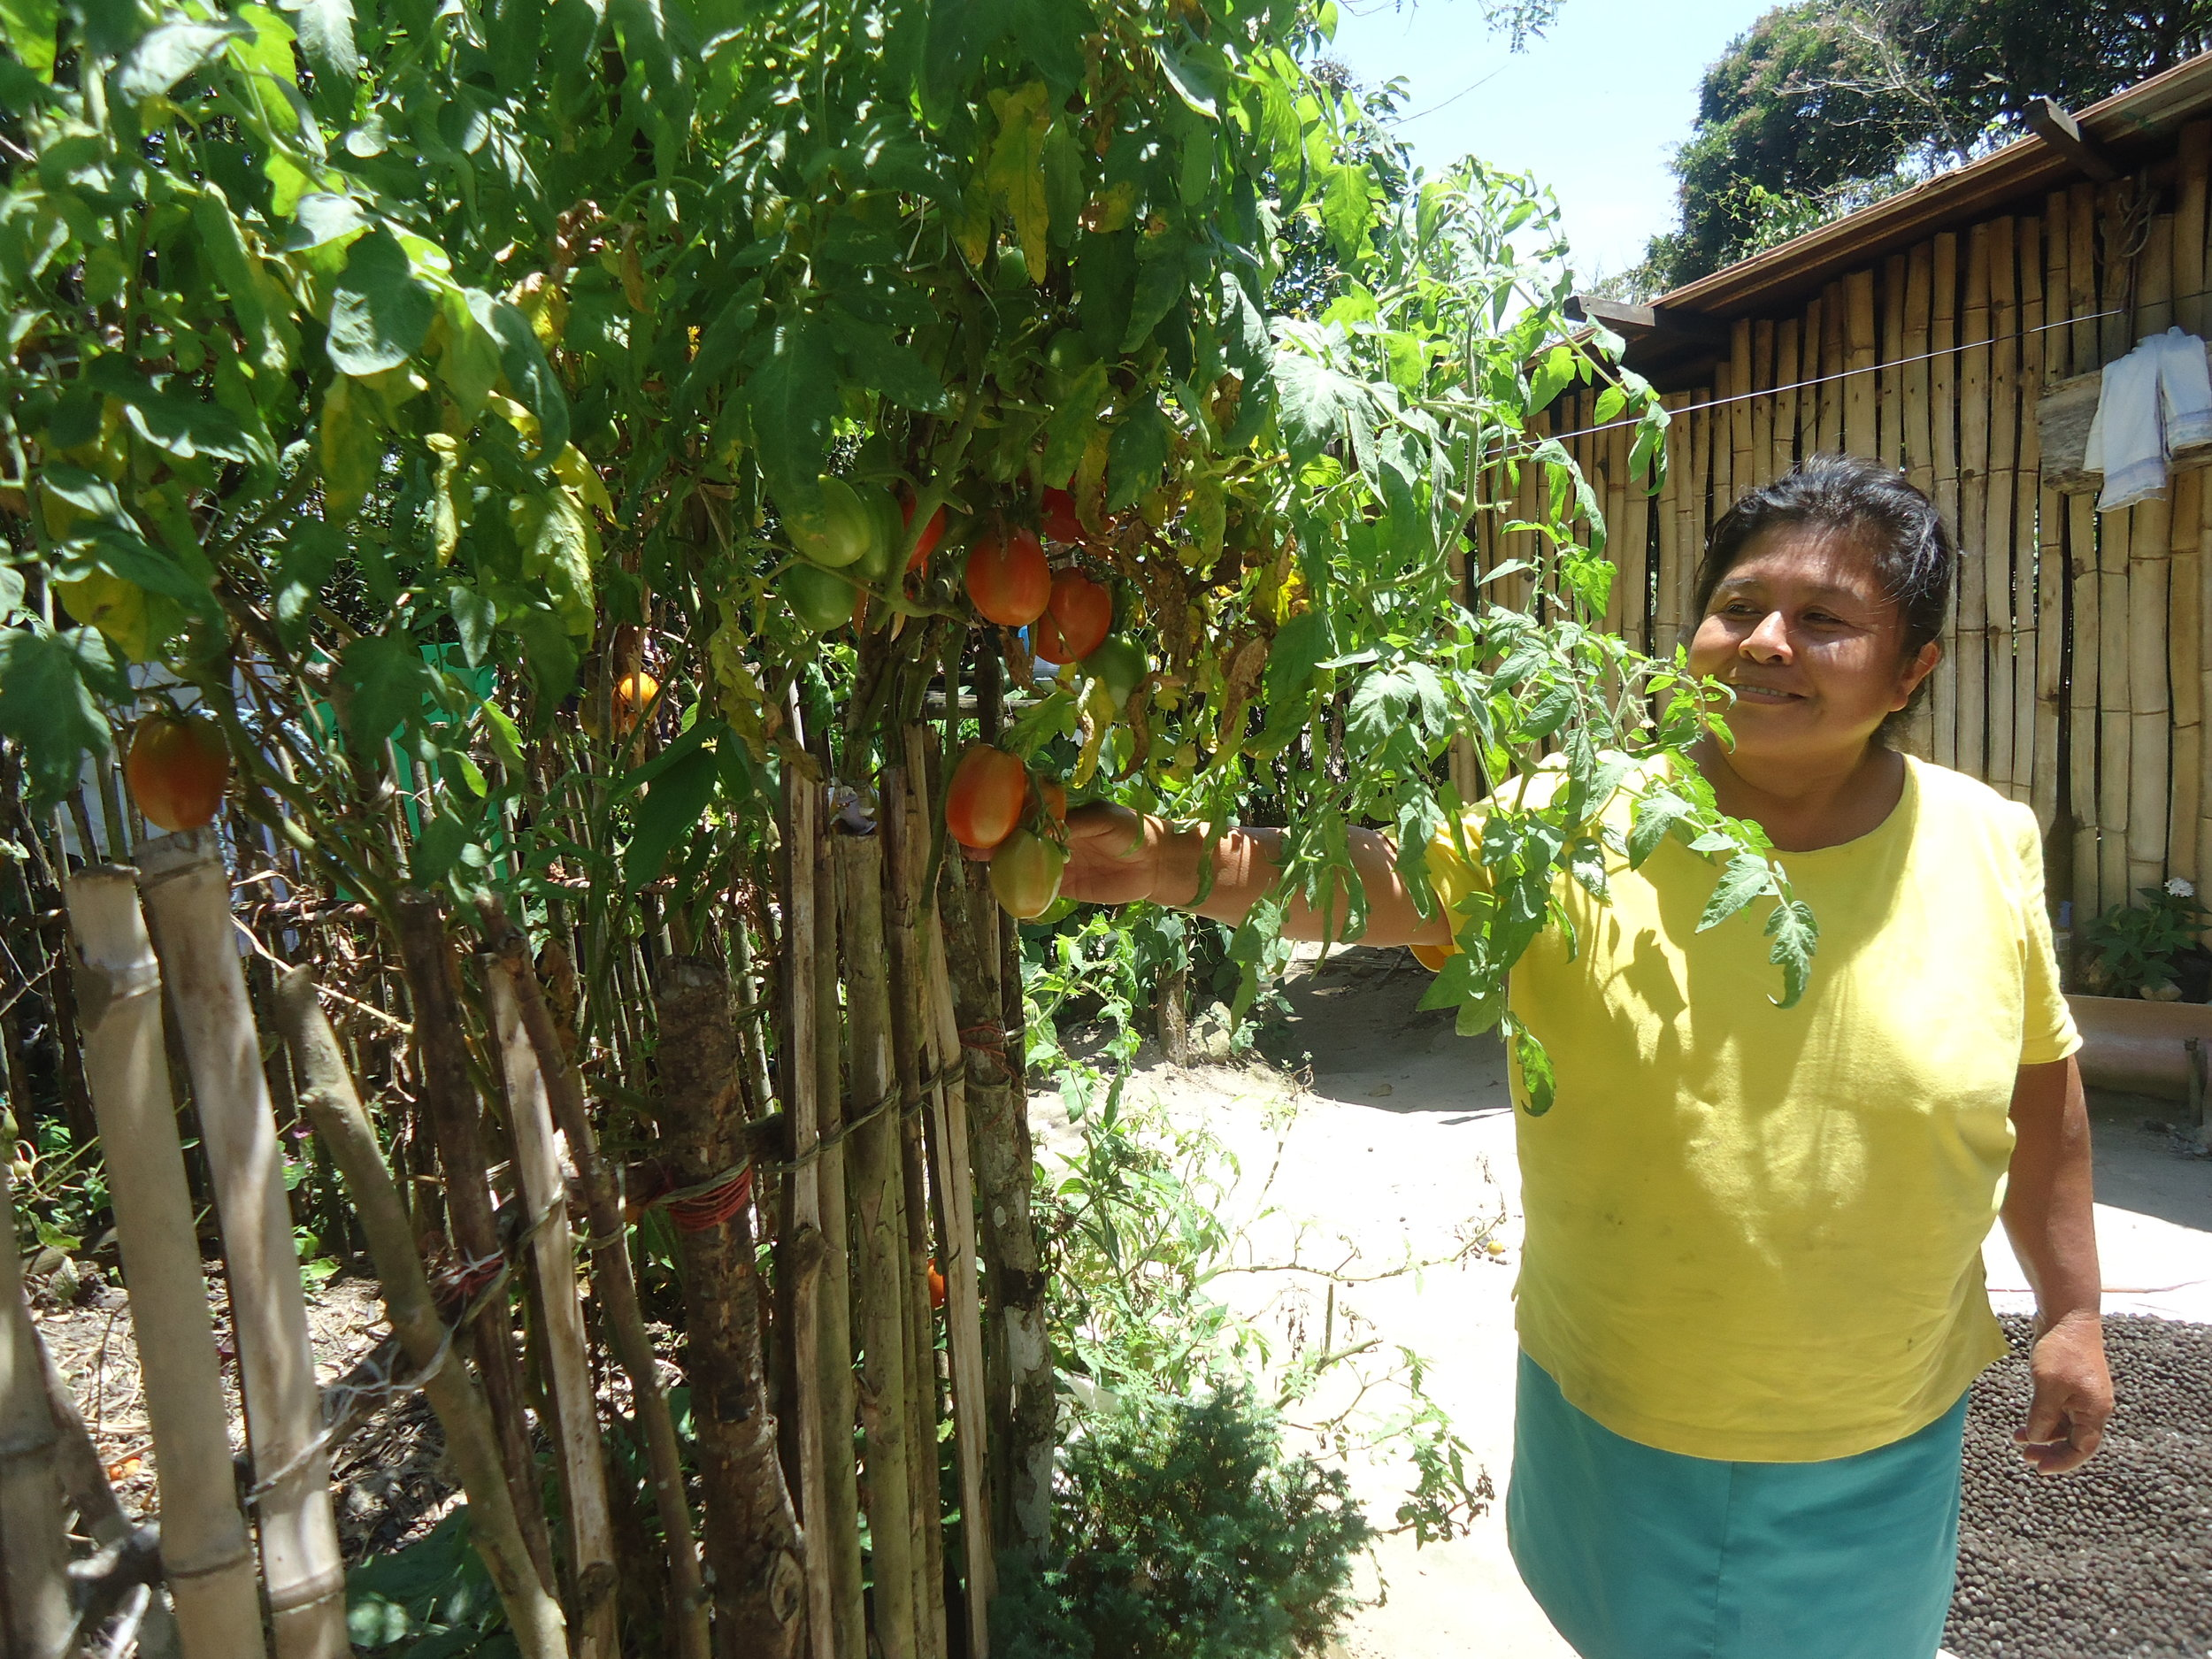 Teresa Rodríguez and her lush, organic tomato plants